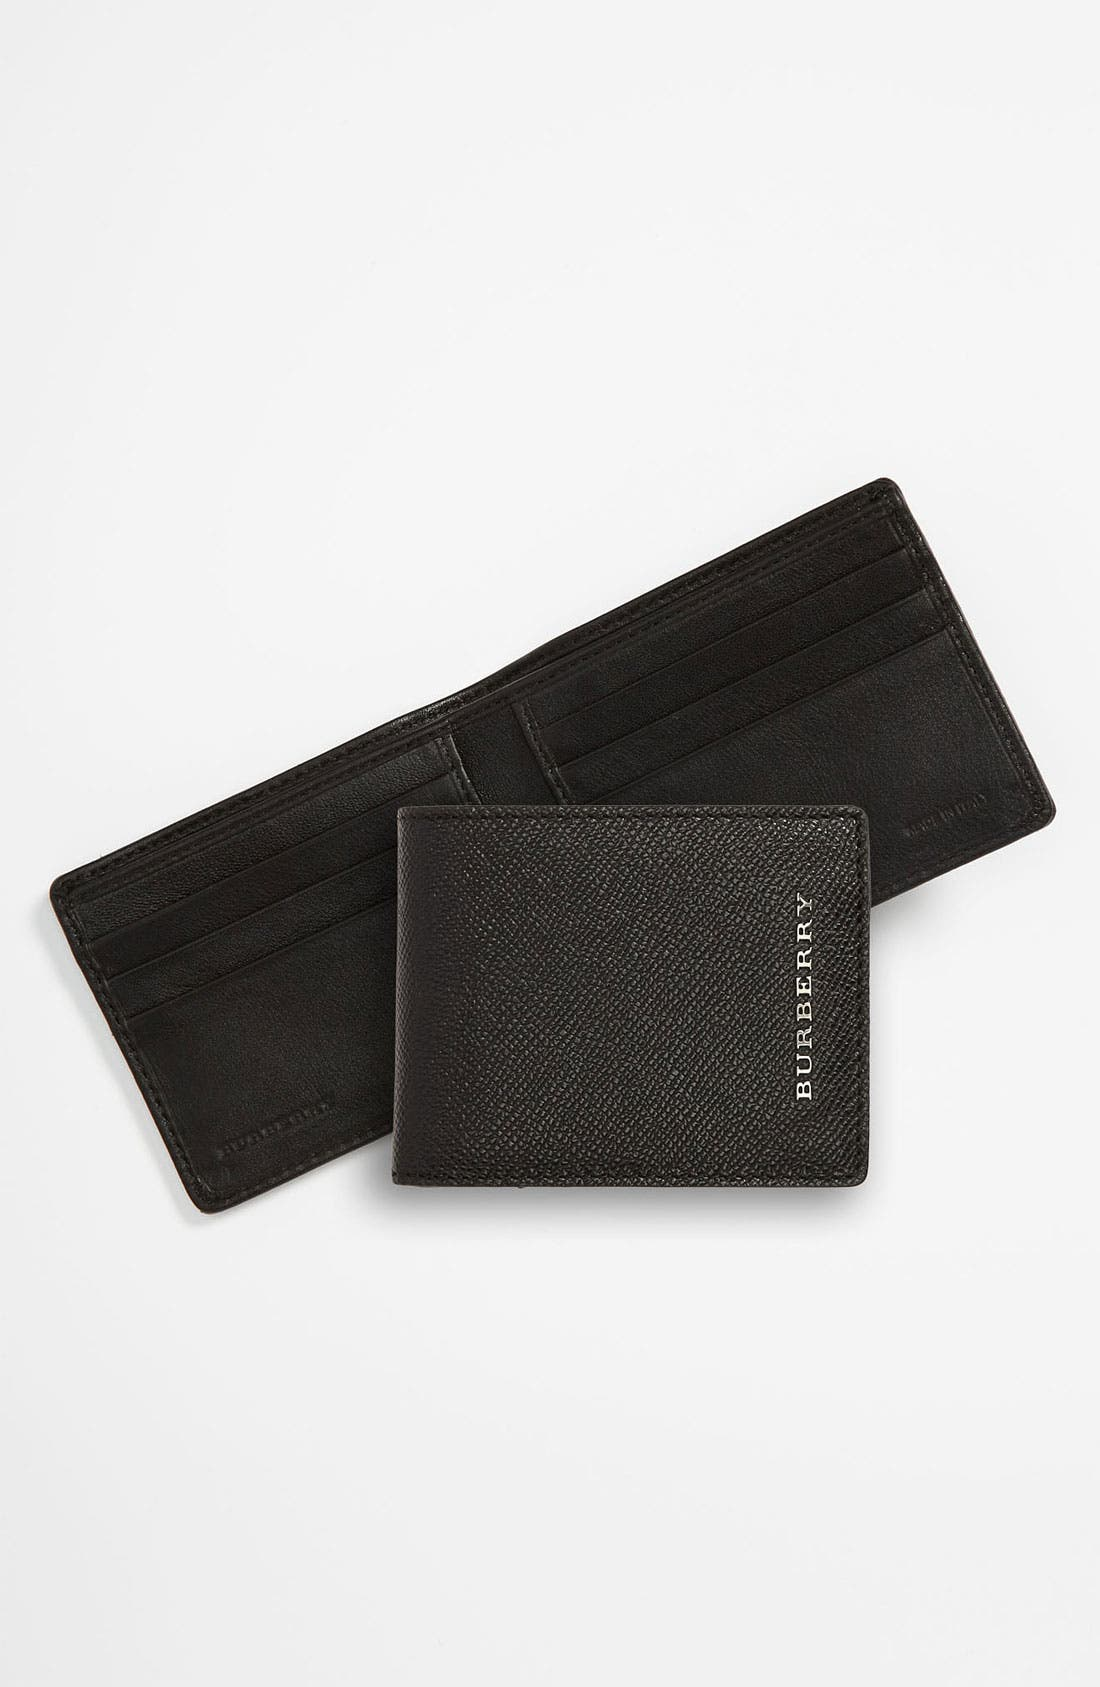 Main Image - Burberry Small Billfold Wallet